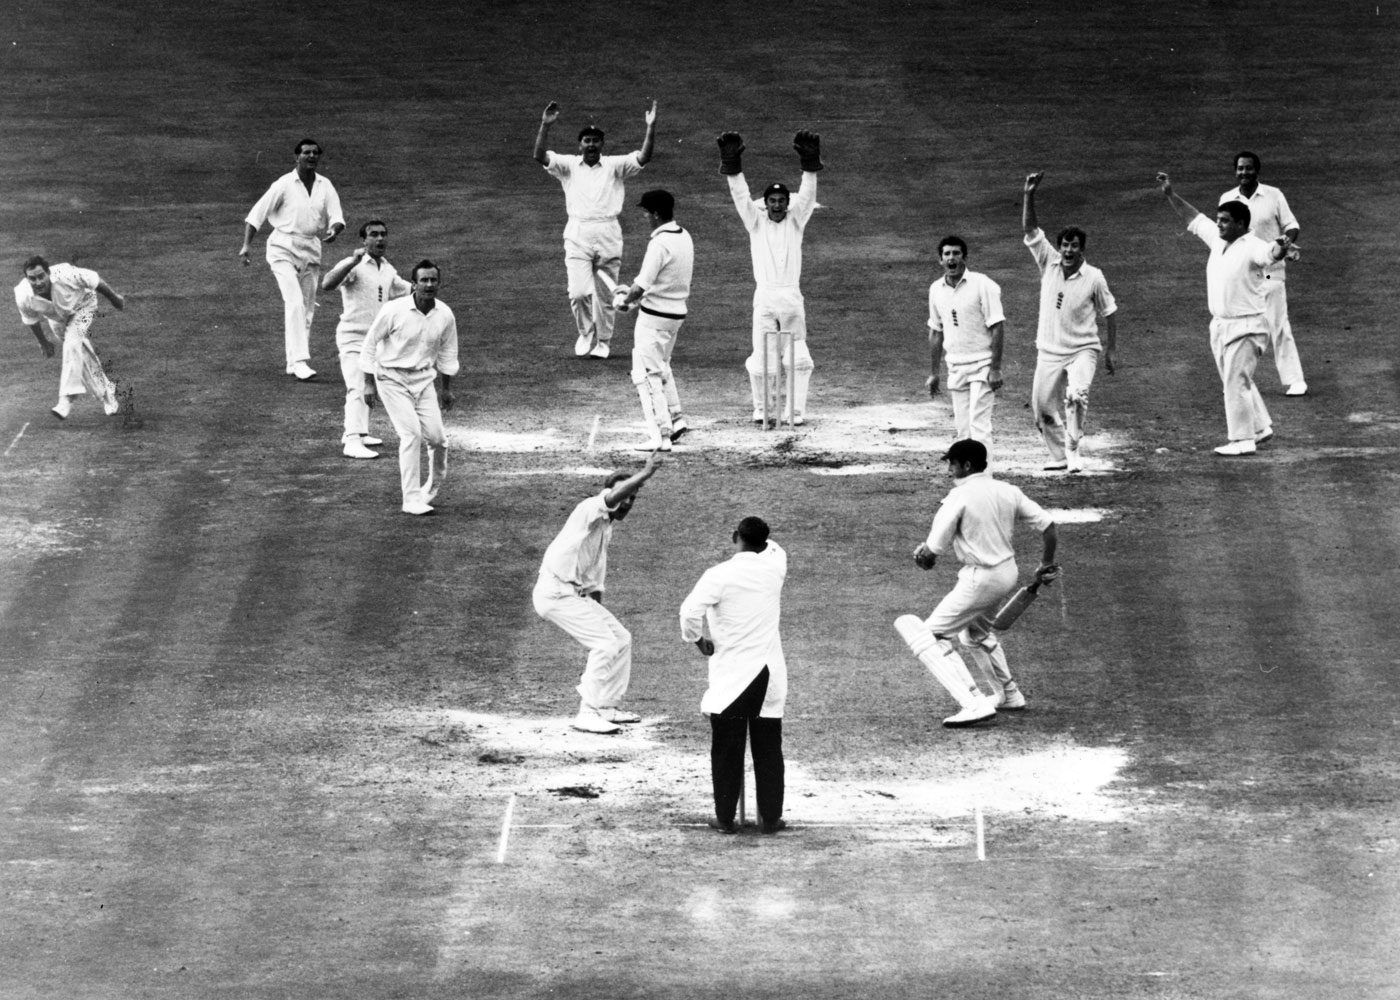 essay on history of cricket game Research papers research one is that baseball originated from the british game of cricket i learned a lot about baseball's history while researching this.